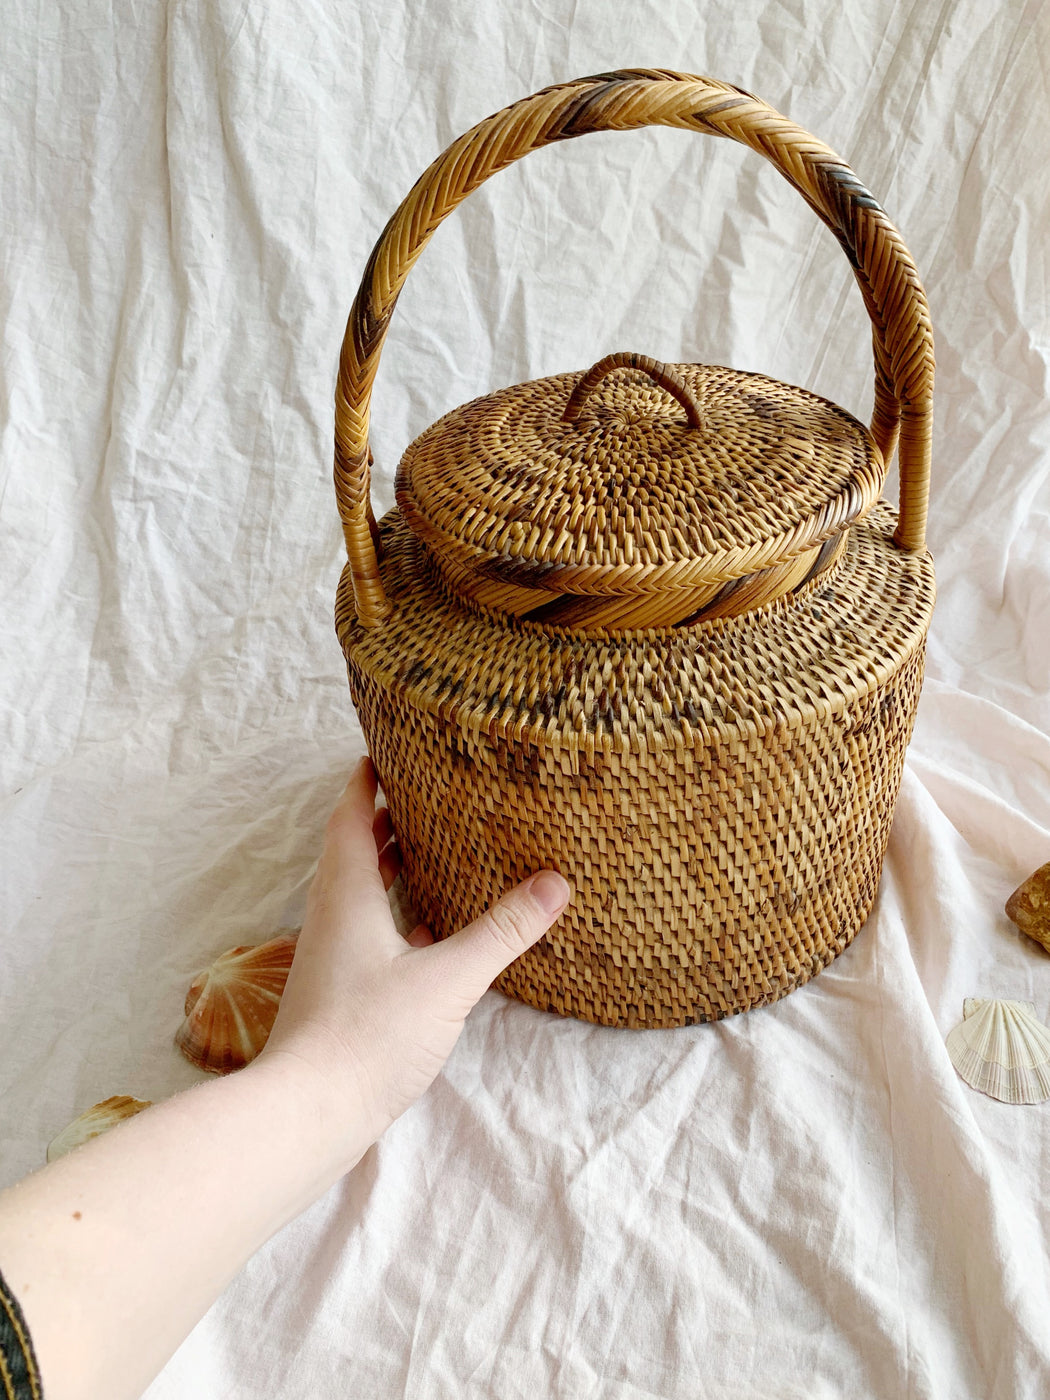 African Woven Basket with Lid and Handle - Storytellers Workshop